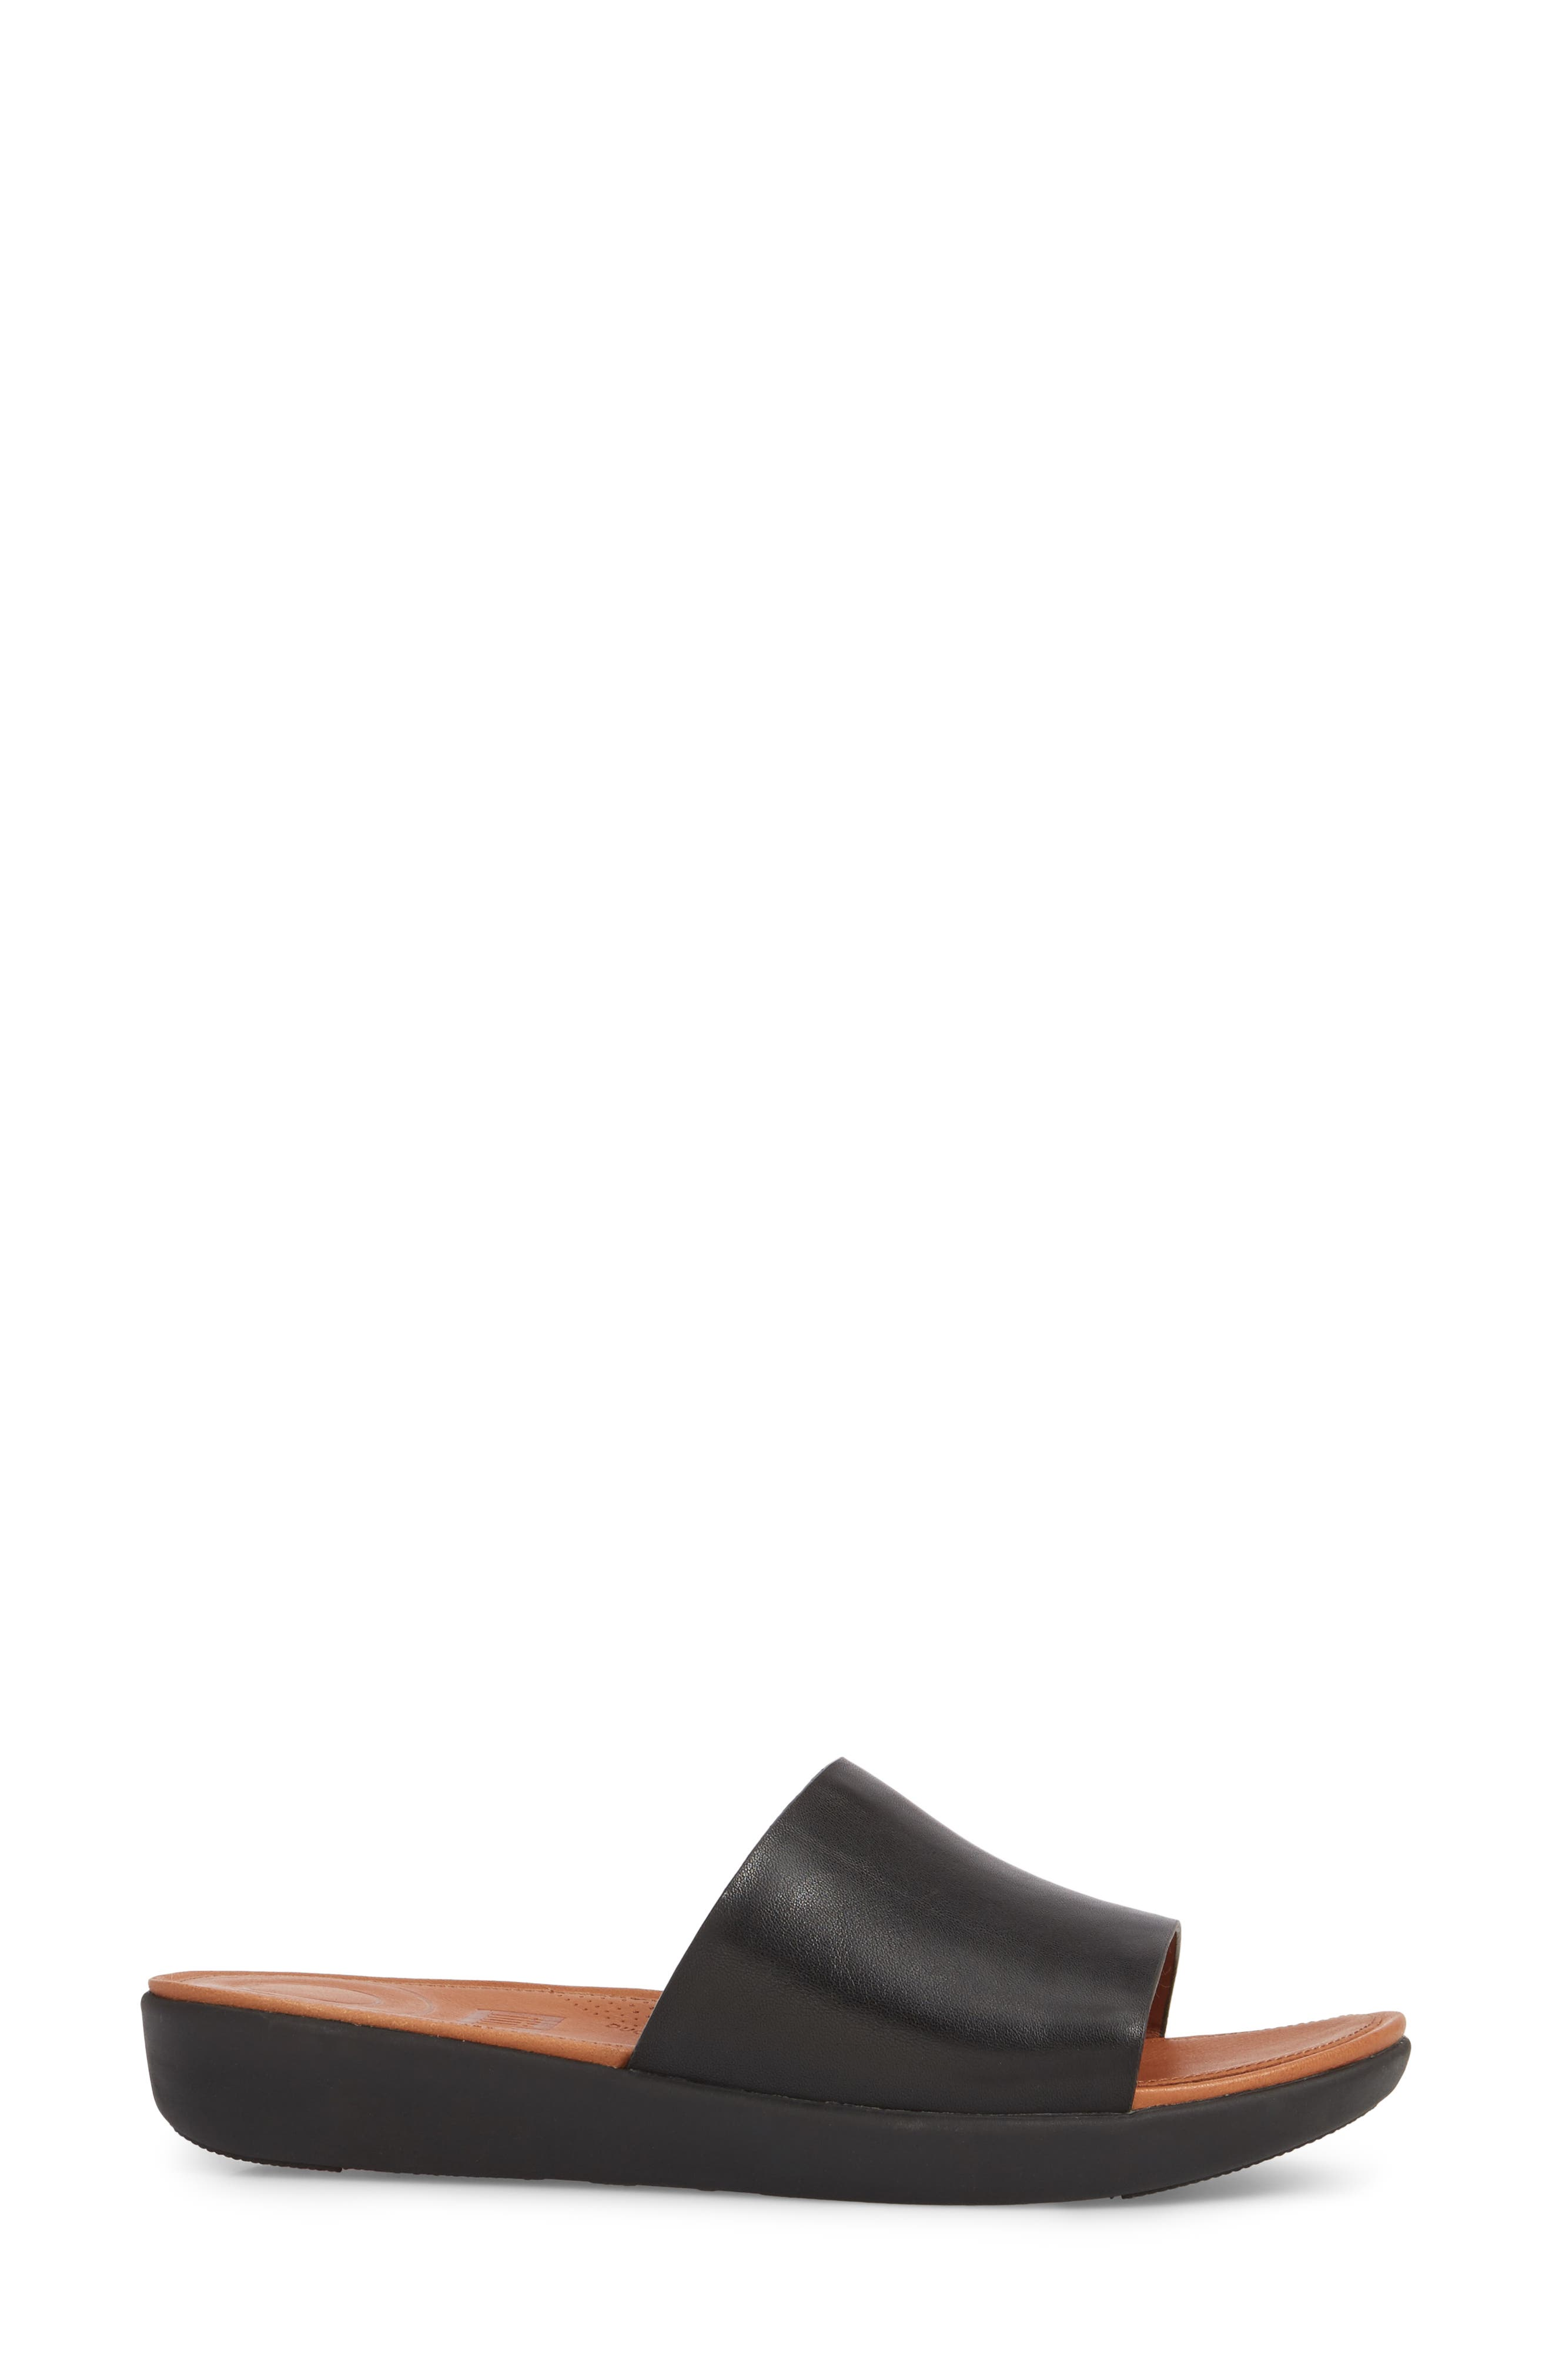 Sola Sandal,                             Alternate thumbnail 3, color,                             BLACK LEATHER